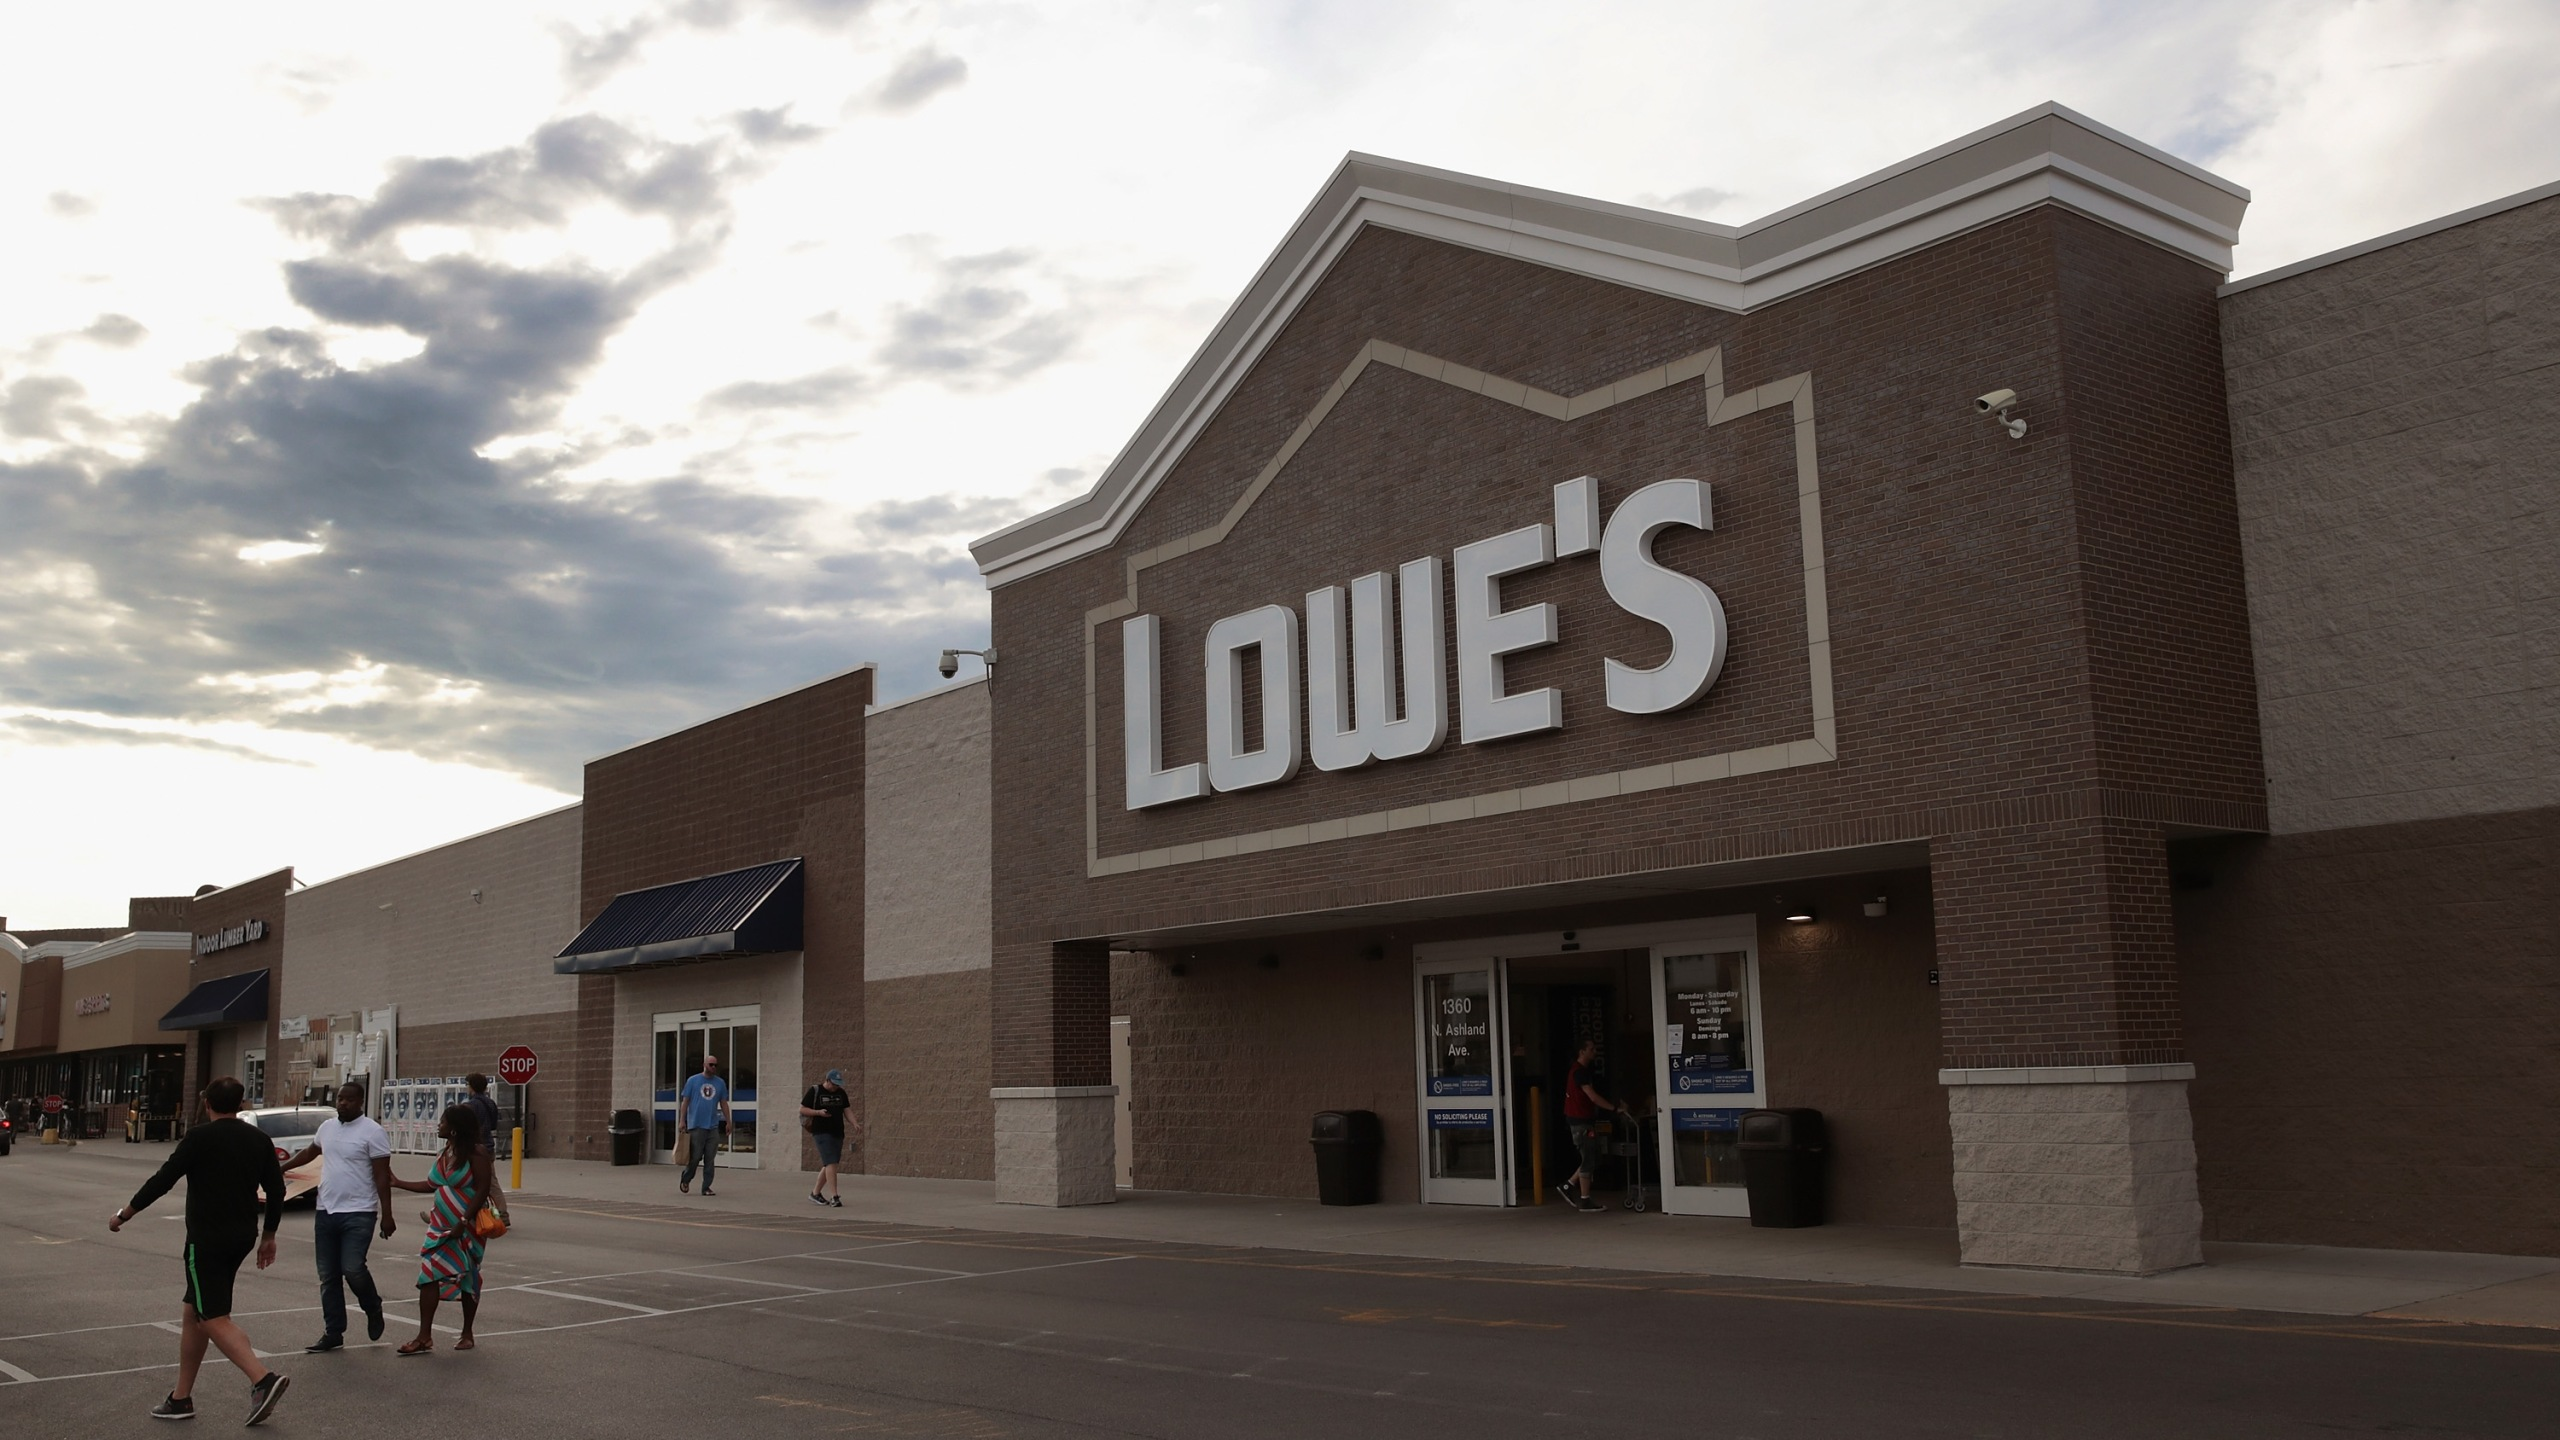 A Lowe's home improvement store is seen on July 25, 2017, in Chicago, Illinois. (Credit: Scott Olson/Getty Images)